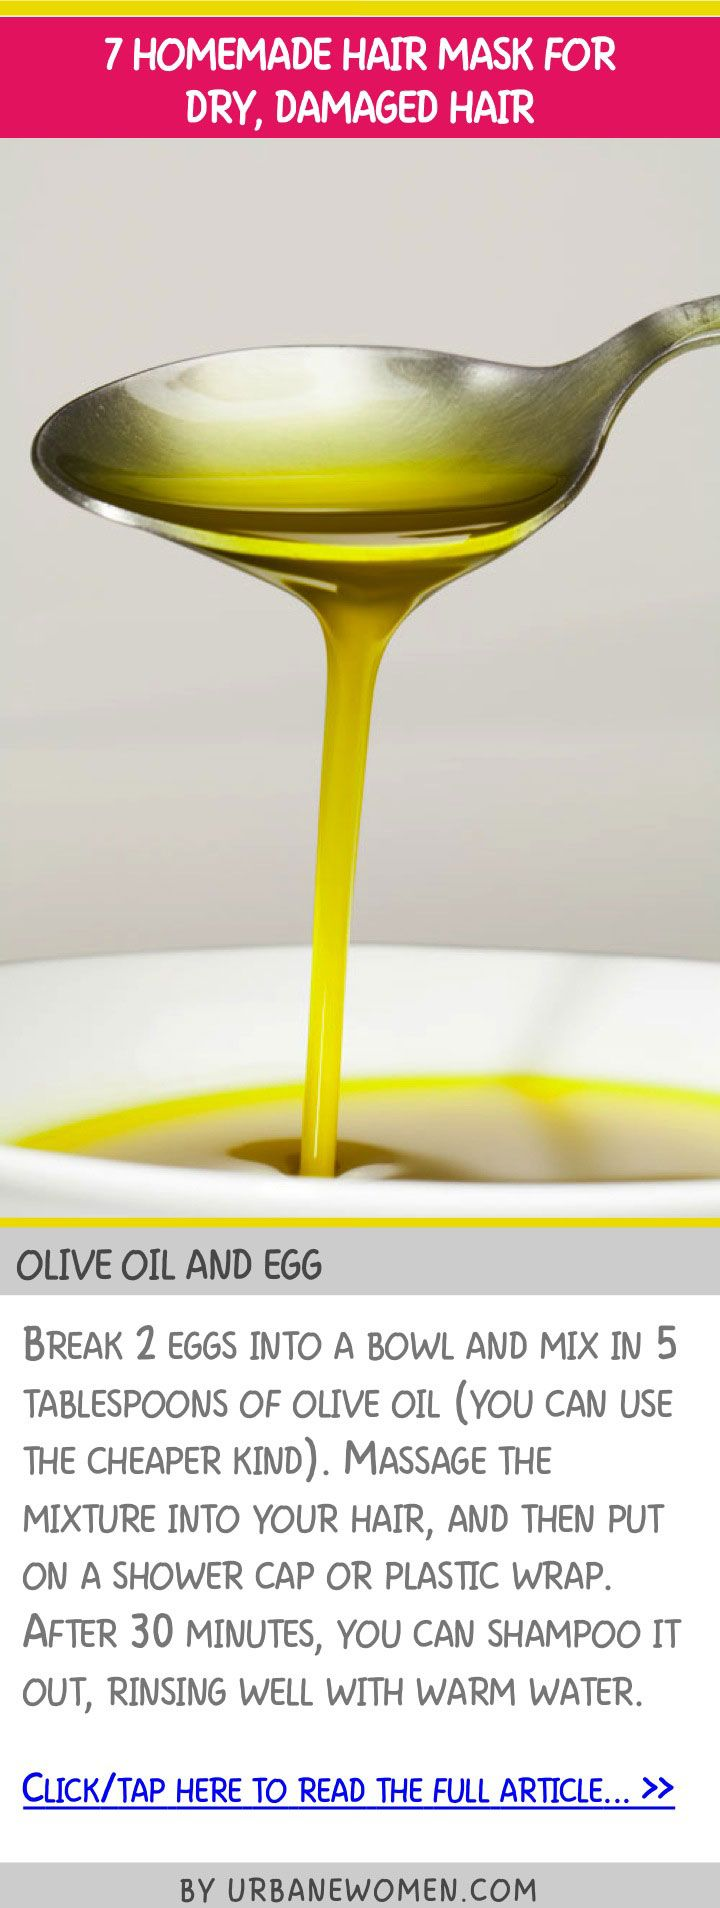 7 homemade hair mask for dry, damaged hair Olive oil and